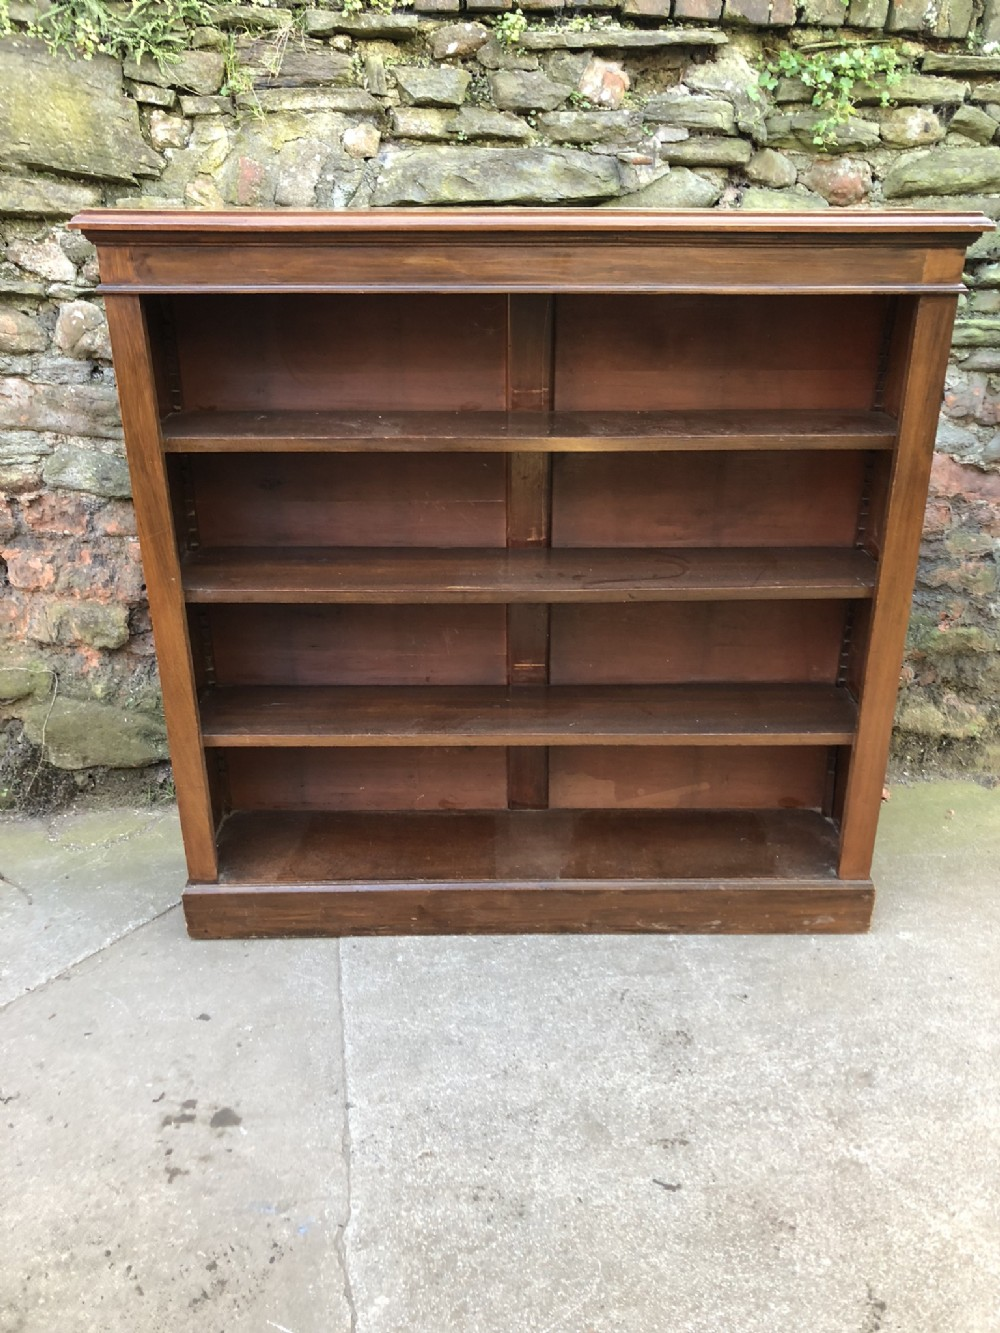 c19th walnut bookcase with adjustable shelves